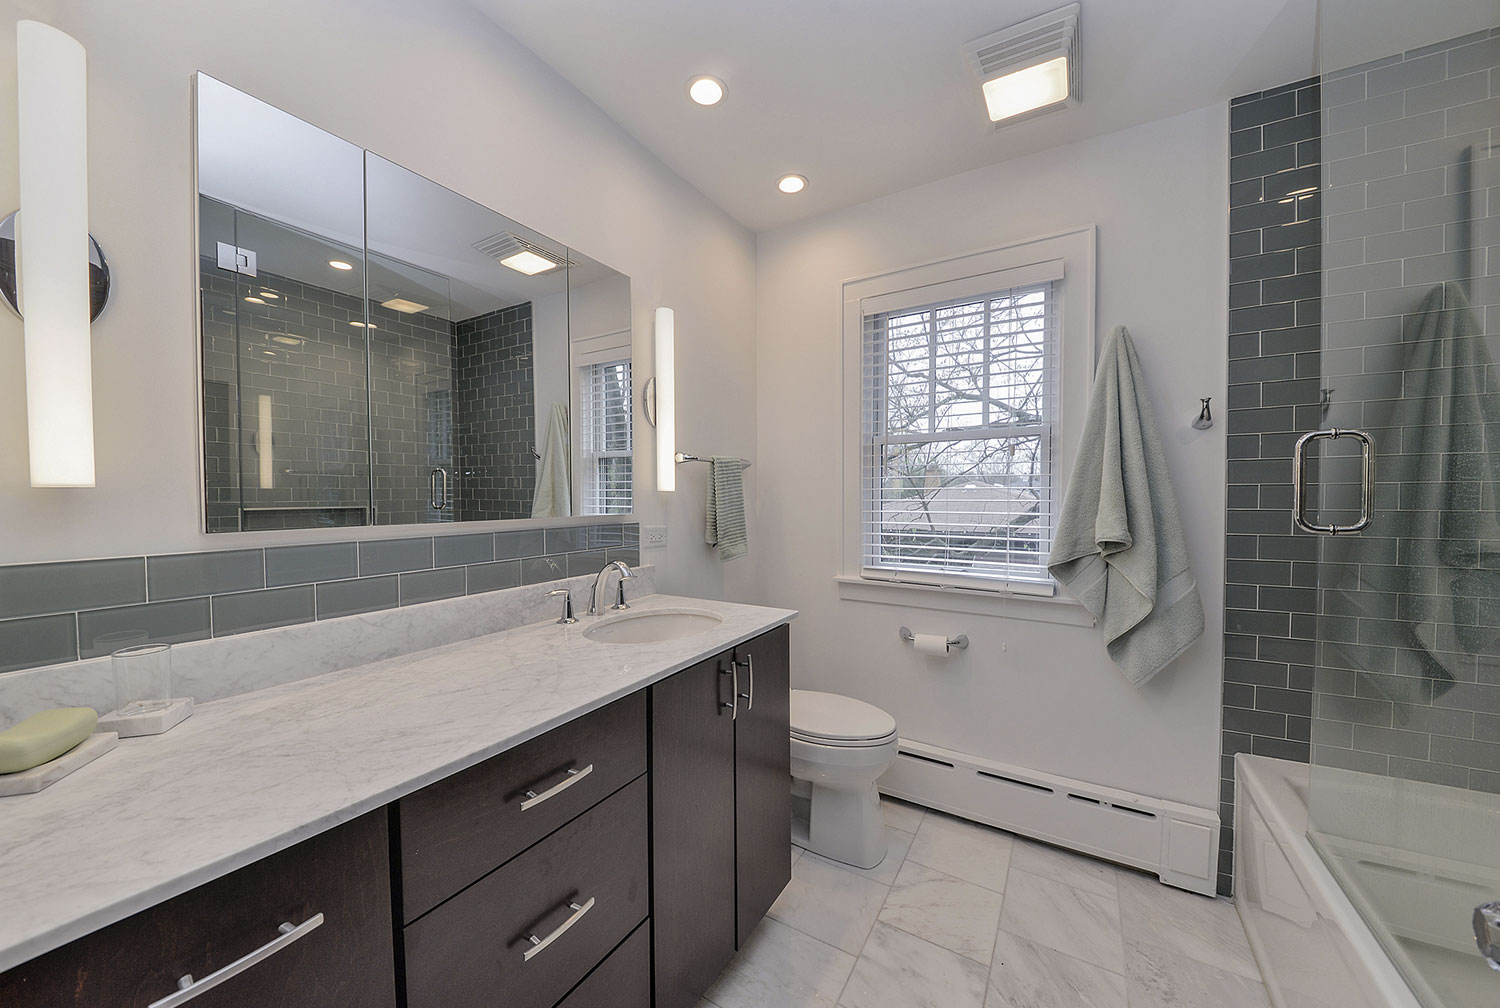 Cindy's Master Bathroom Remodel Pictures